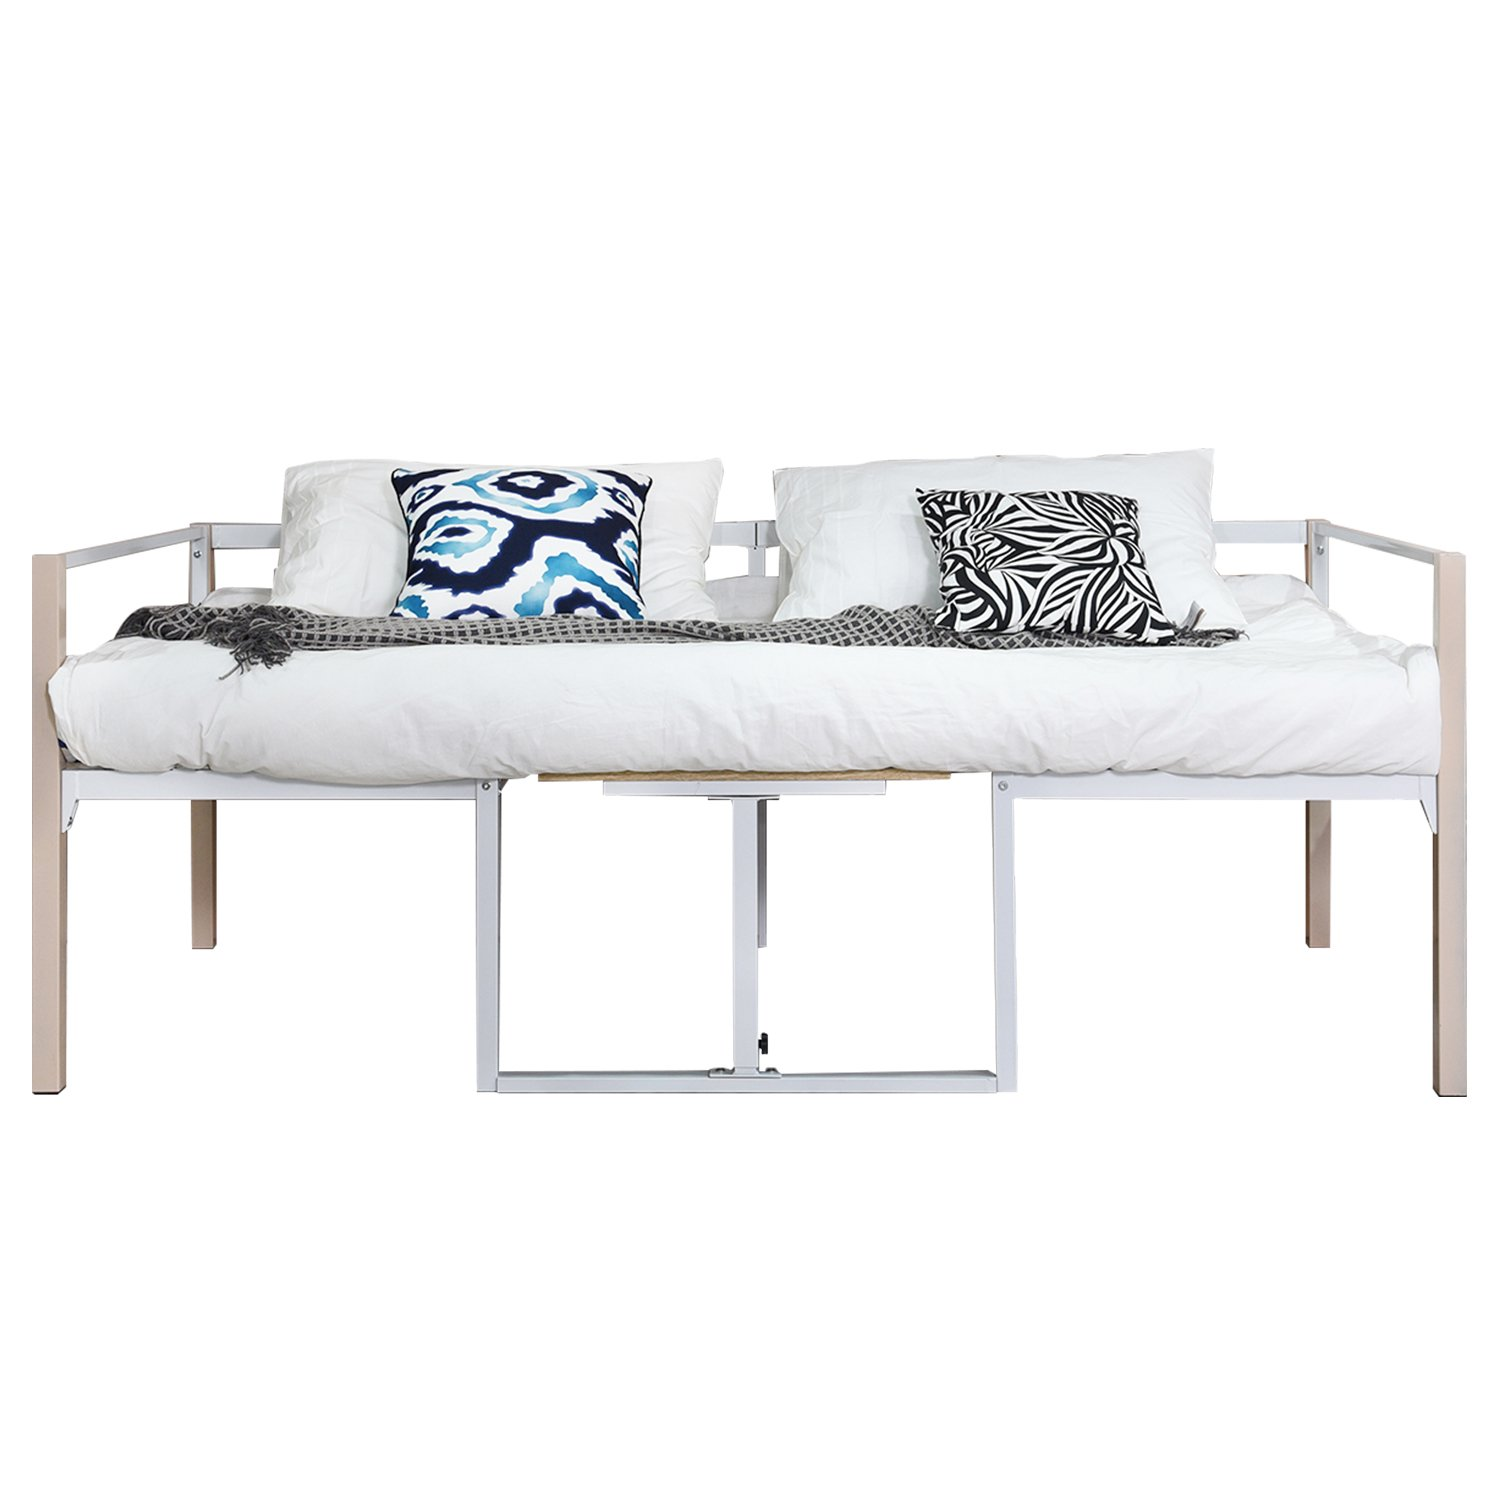 GreenForest Daybed Bed Frame with Wooden Board Mattress Support Foundation Steel Slat Platform Base Twin Size